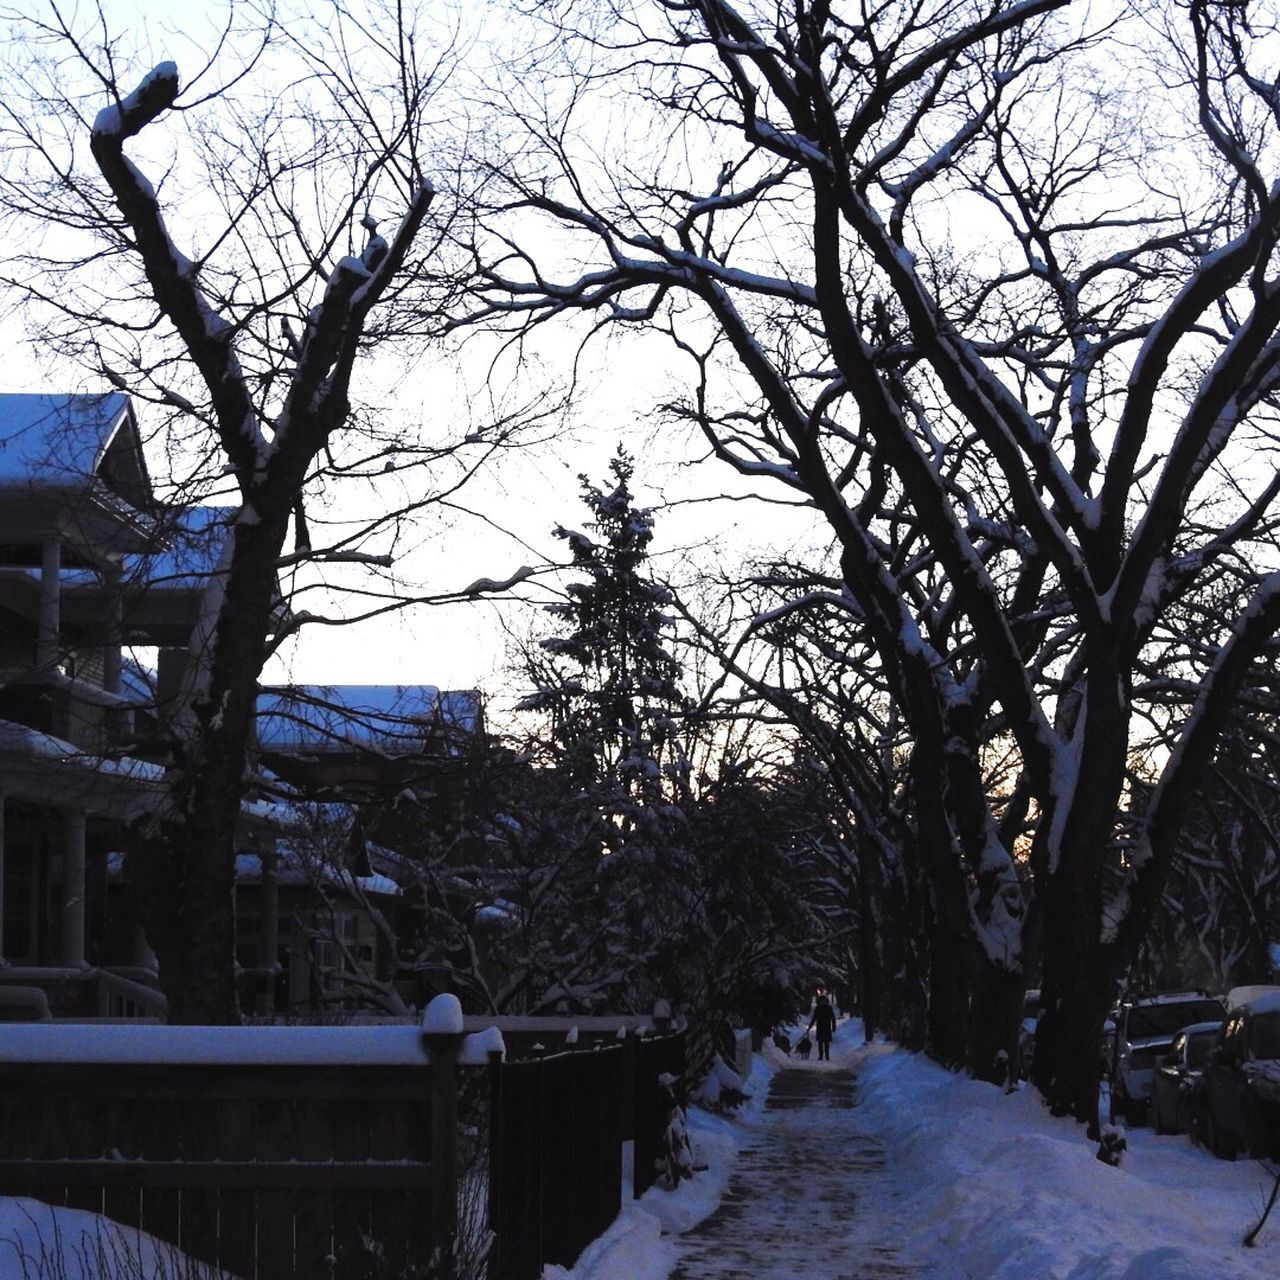 Nature Day Outdoors Bare Tree Architecture Sky City Tranquility Branch Cold Woman Walking Her Dog